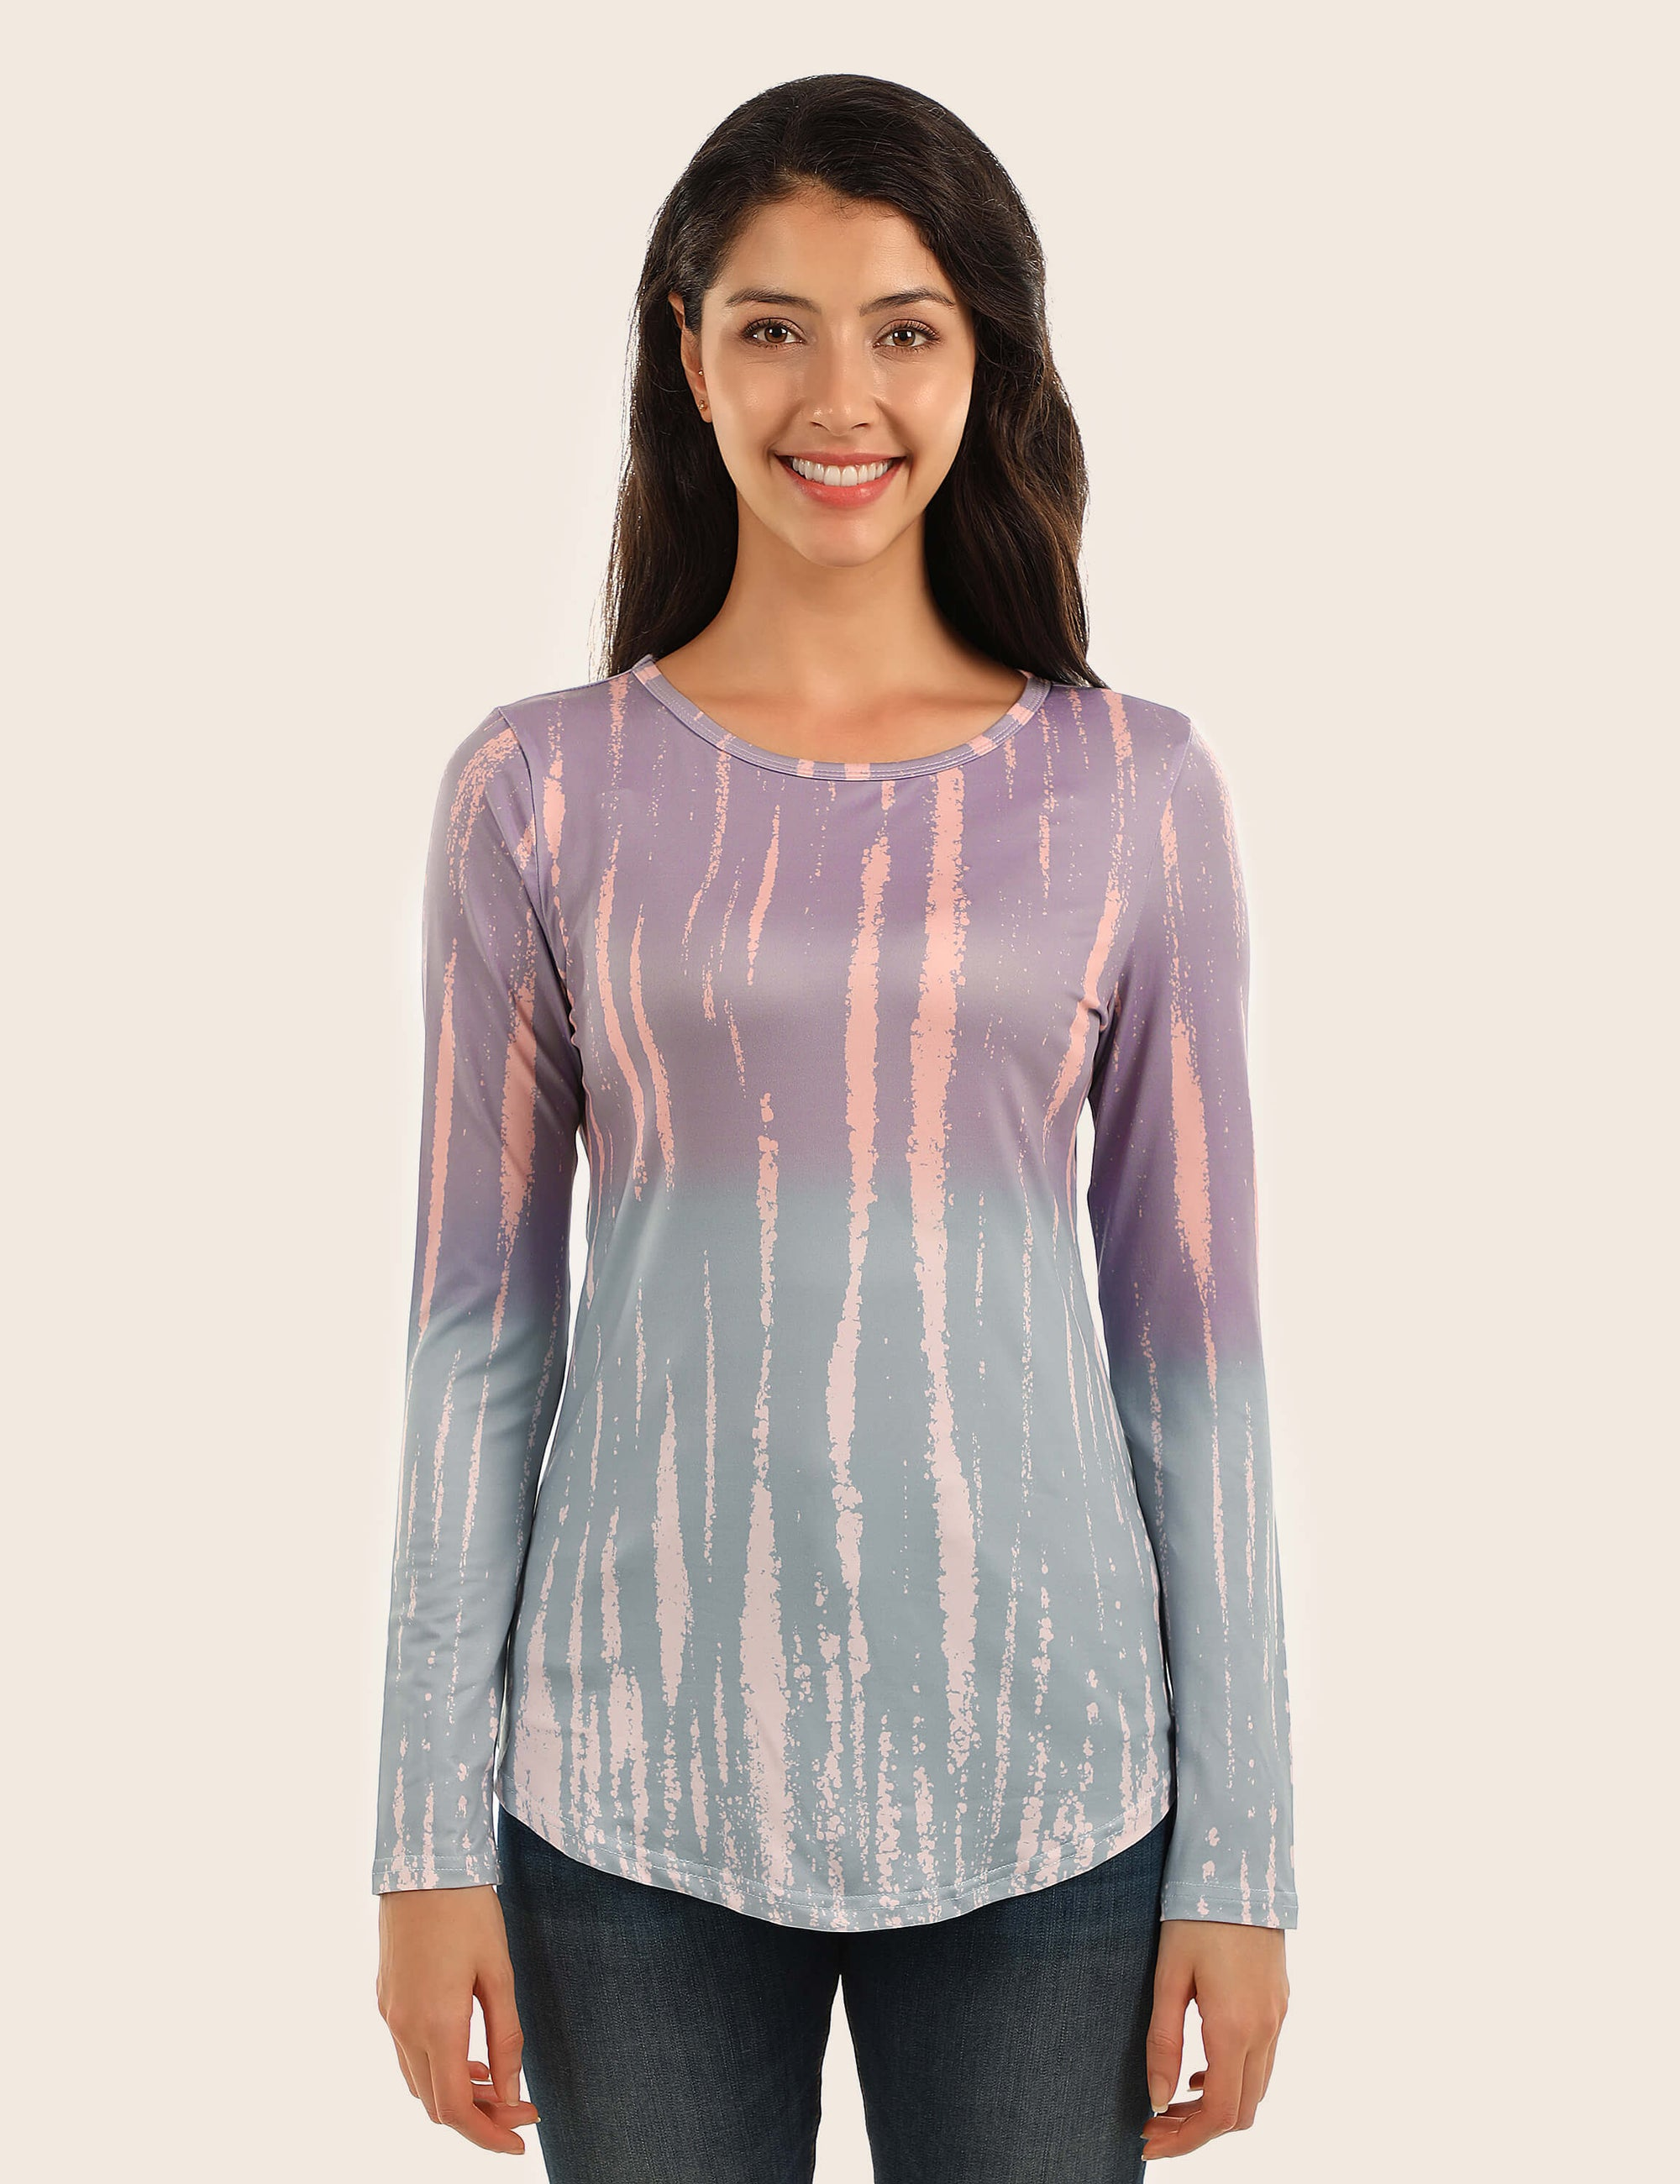 Fantasy Dream Skinny Tie Dye T-Shirt